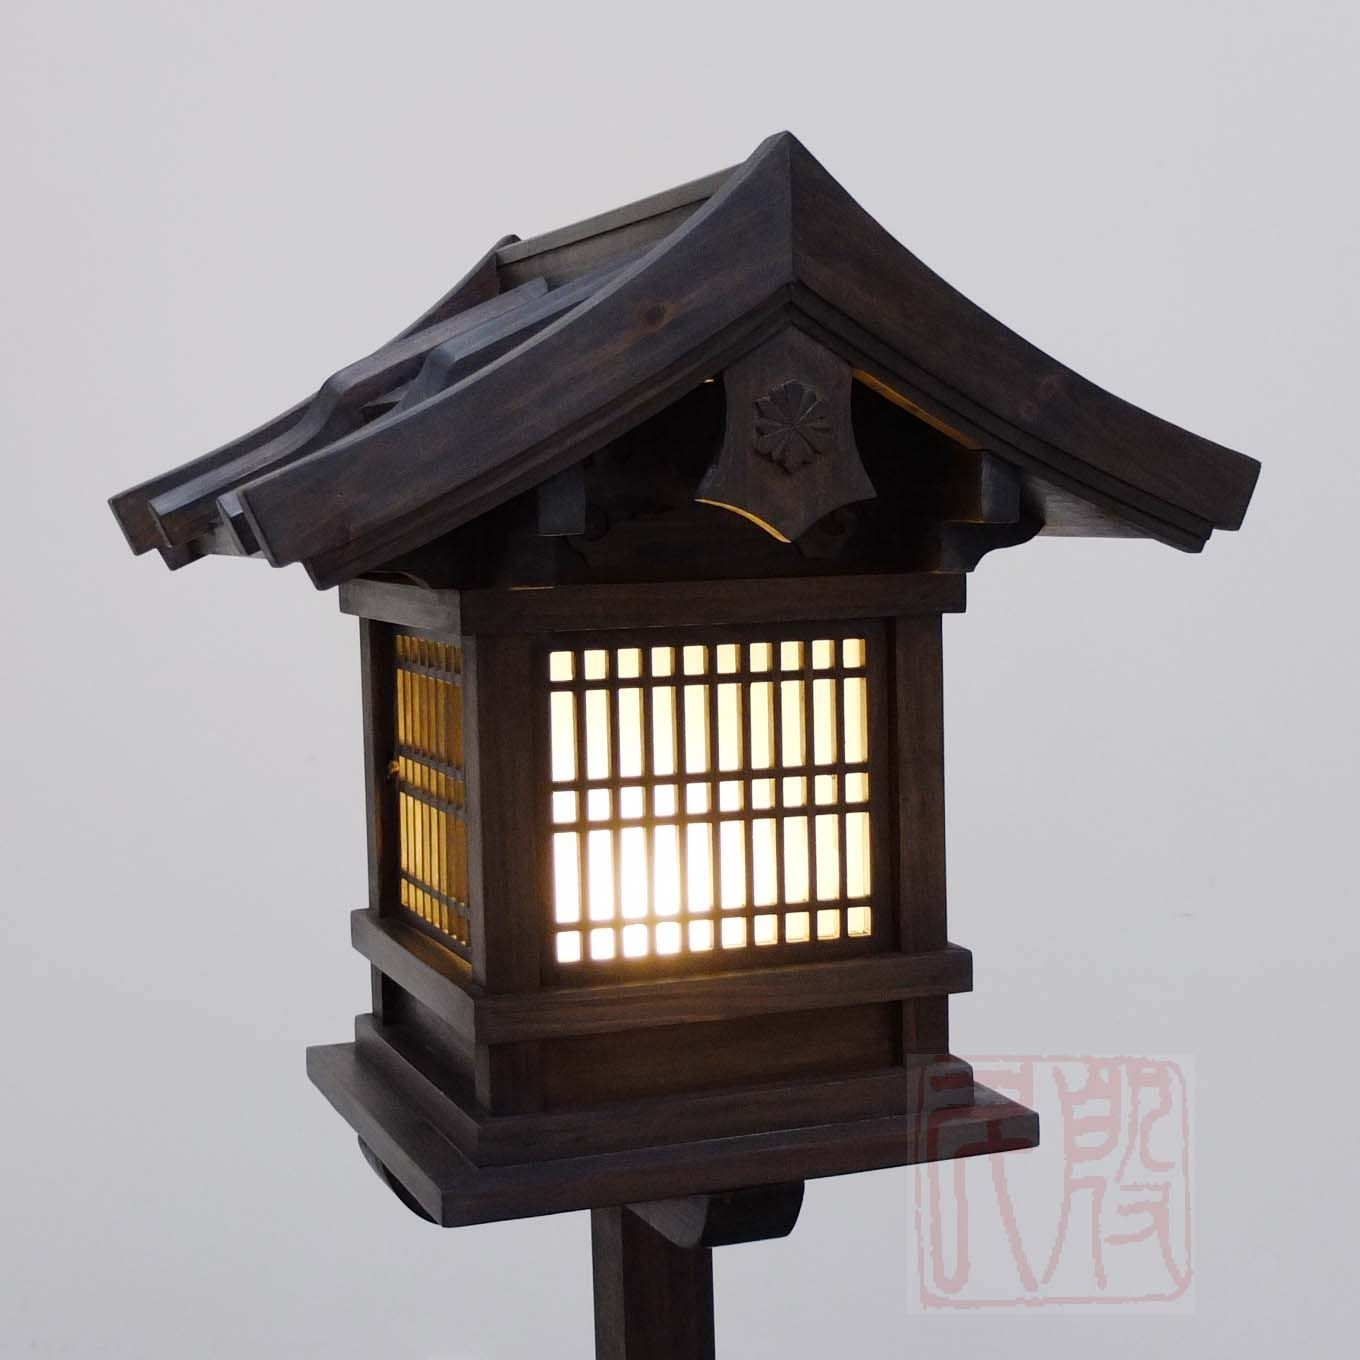 Japanese Wooden Lantern, Outdoor (Wl2) | Bonsai | Pinterest within Outdoor Hanging Japanese Lanterns (Image 12 of 20)